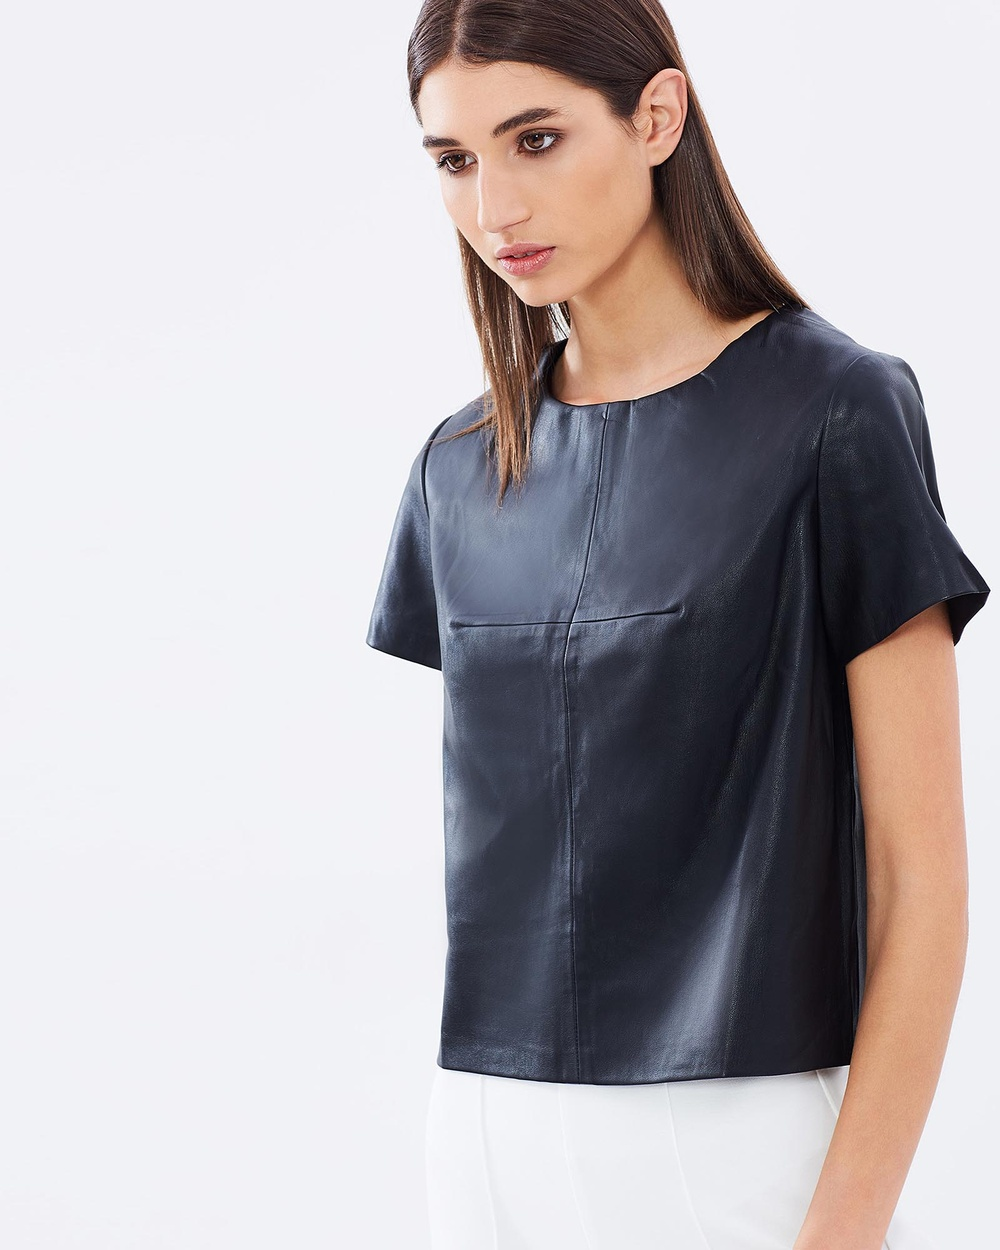 The Rushing Hour Eleanor Faux Leather Top Cropped tops Black Eleanor Faux Leather Top